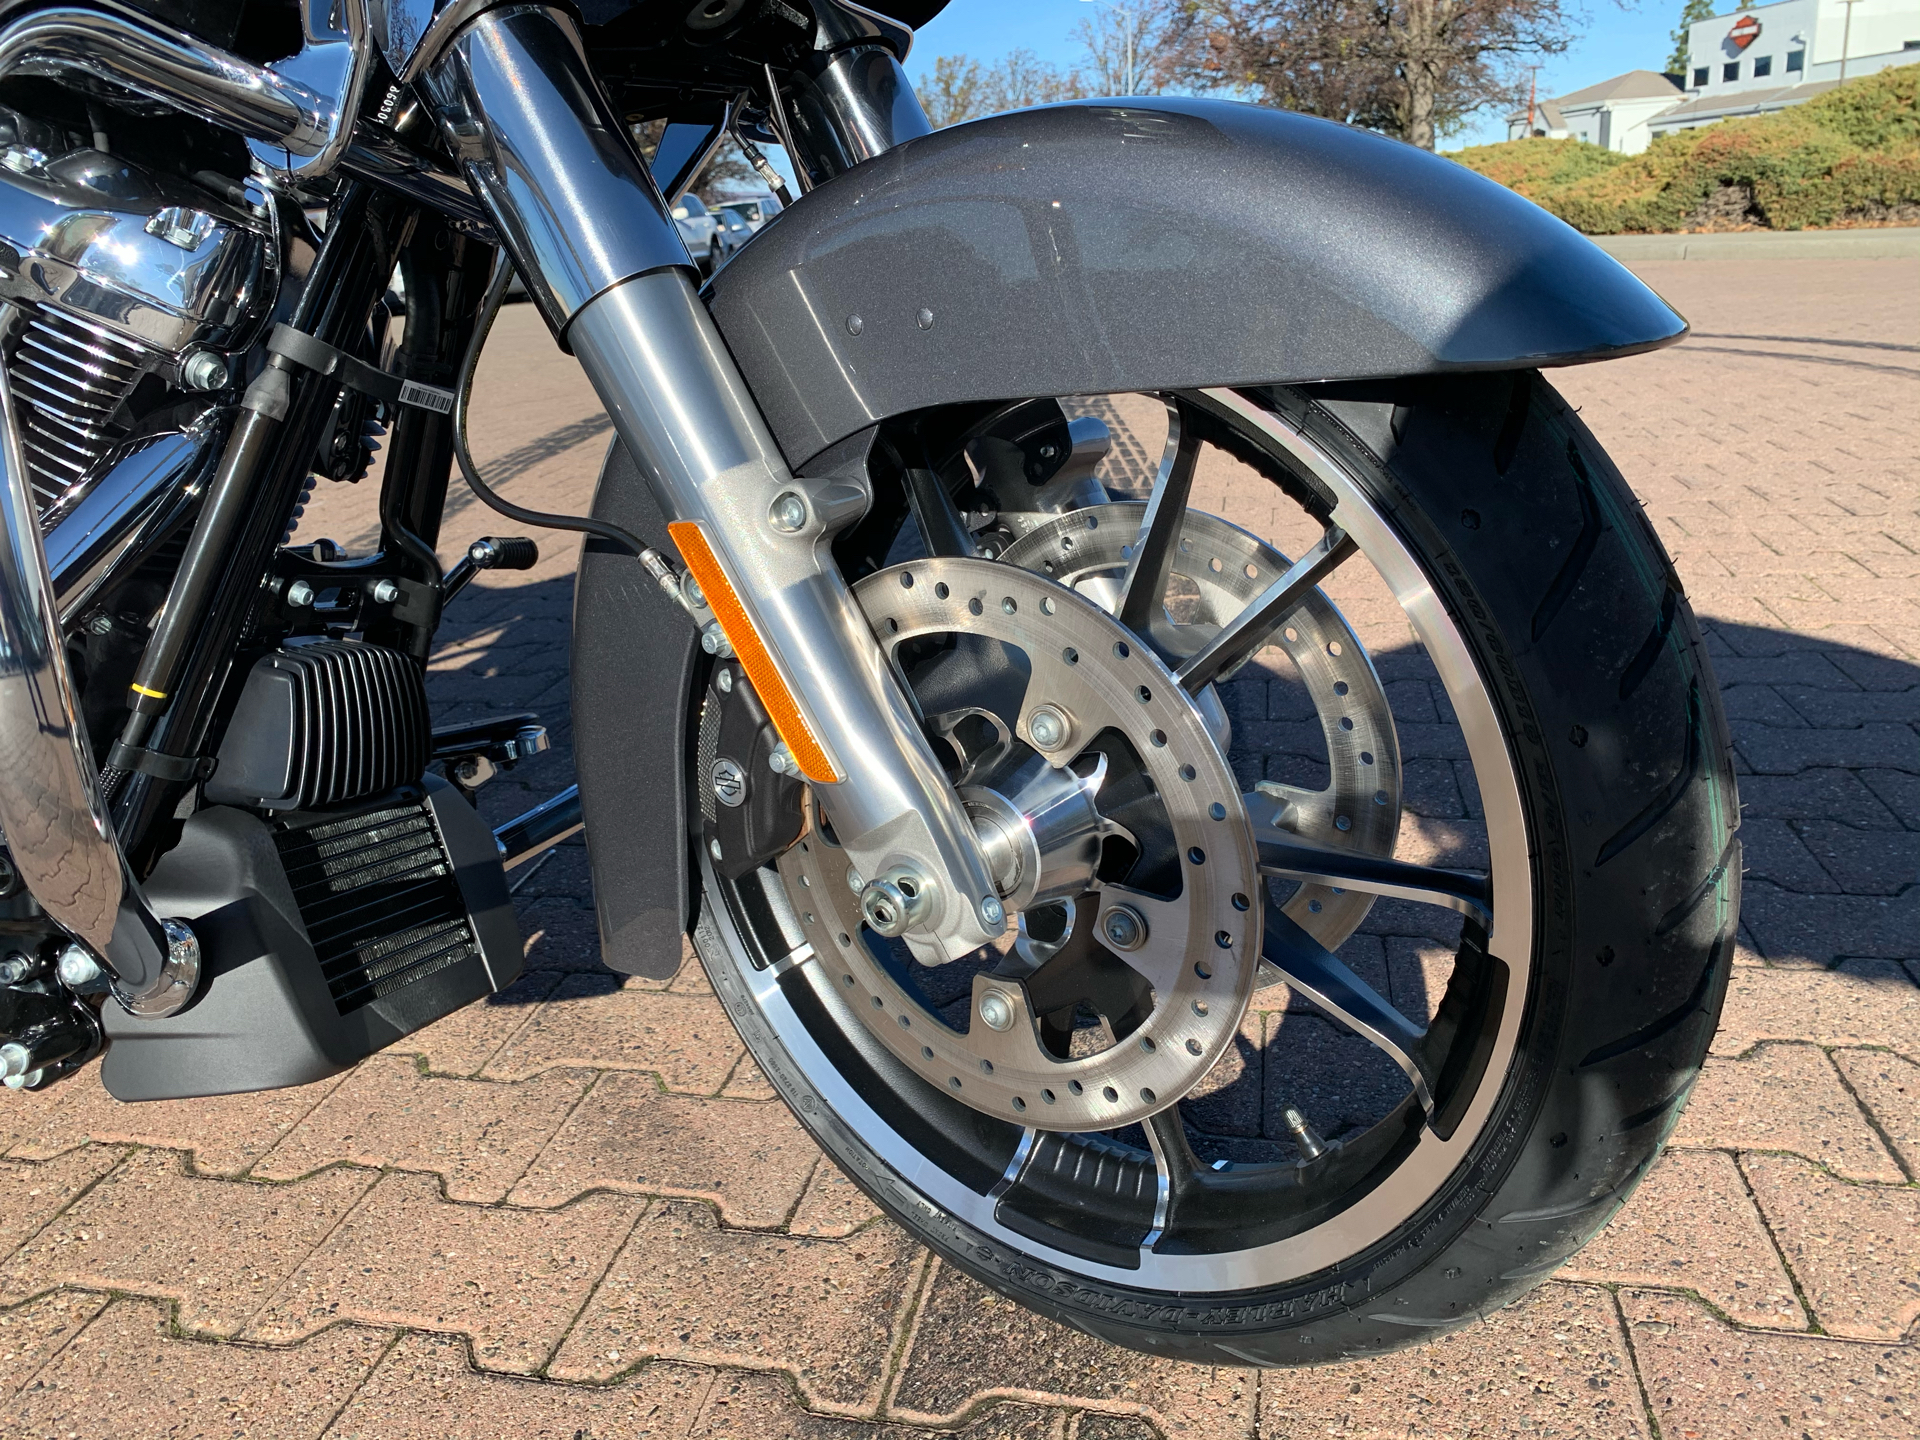 2021 Harley-Davidson Road Glide in Vacaville, California - Photo 4